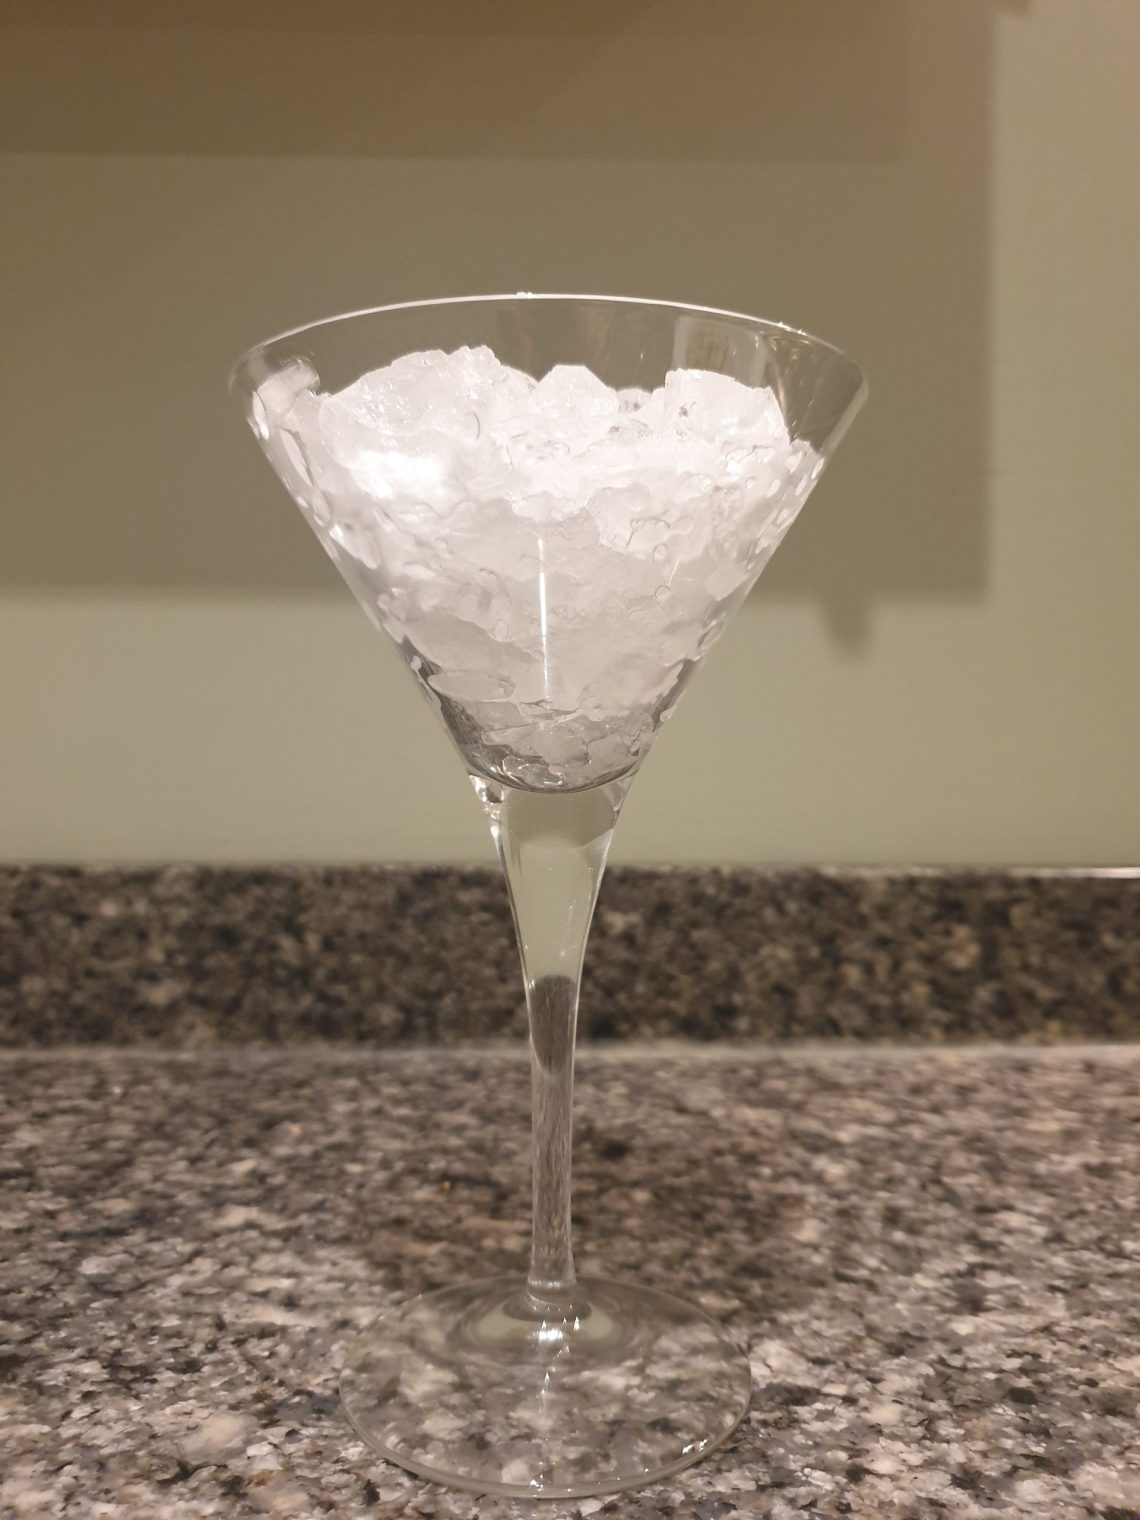 whiskey sour - a cocktail glass filled with crushed ice